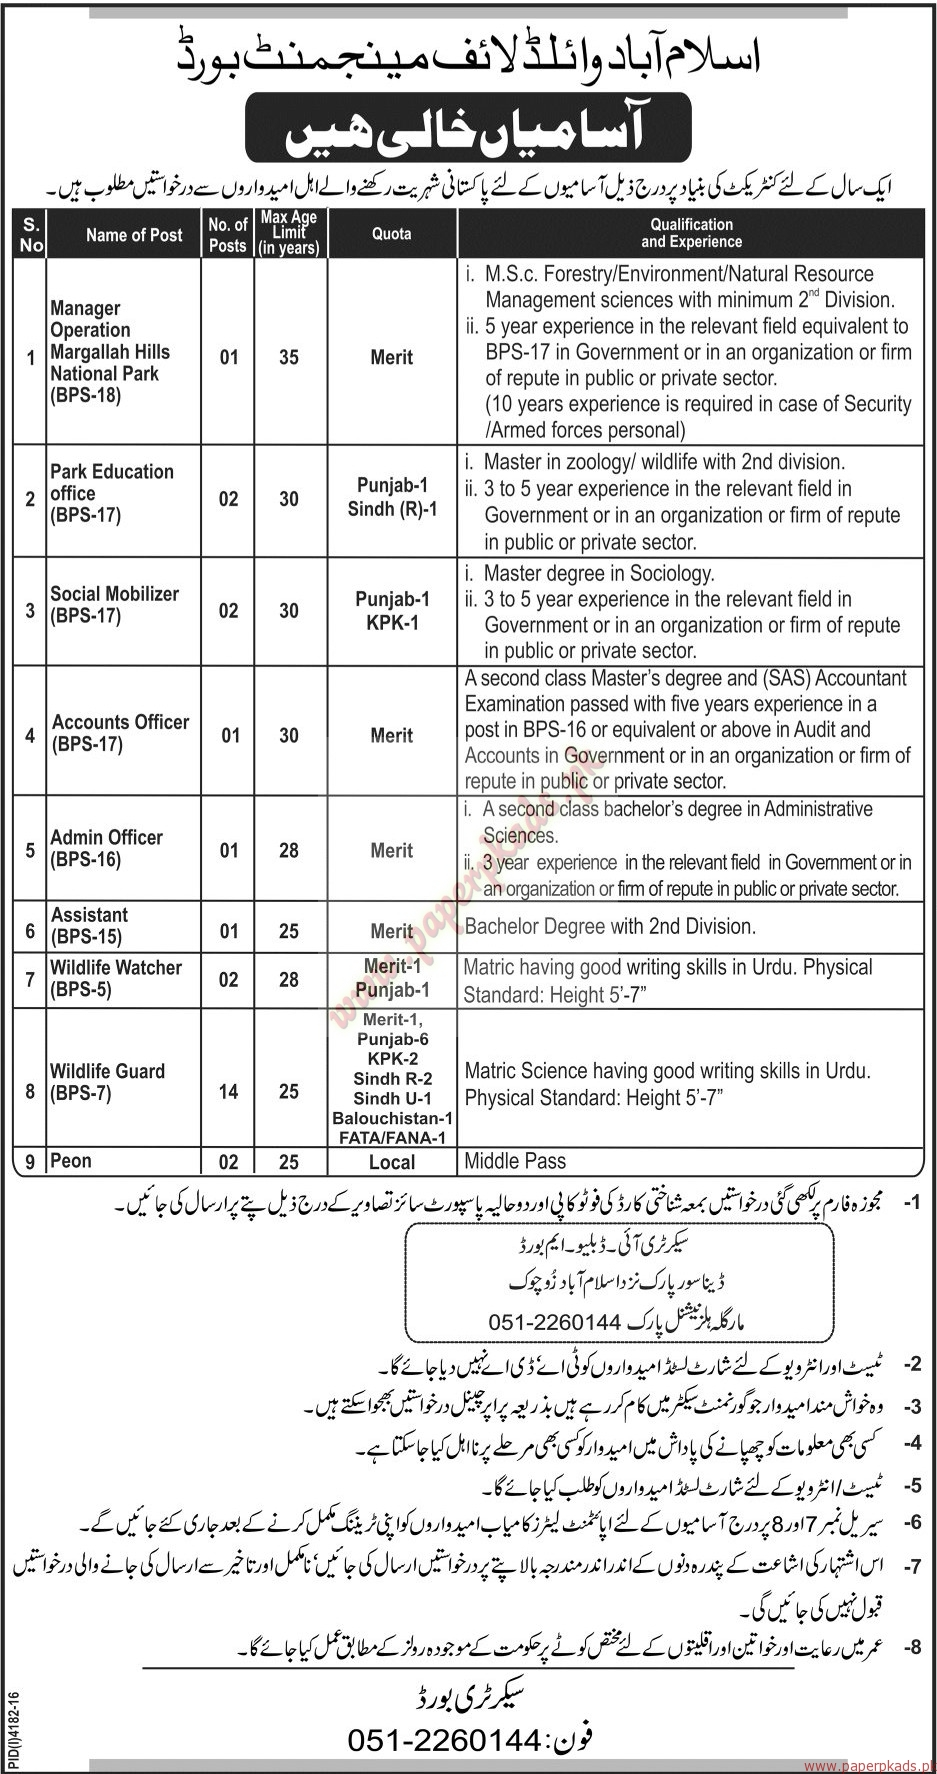 islamabad wild life management board jobs jang jobs ads  islamabad wild life management board jobs jang jobs ads 14 2017